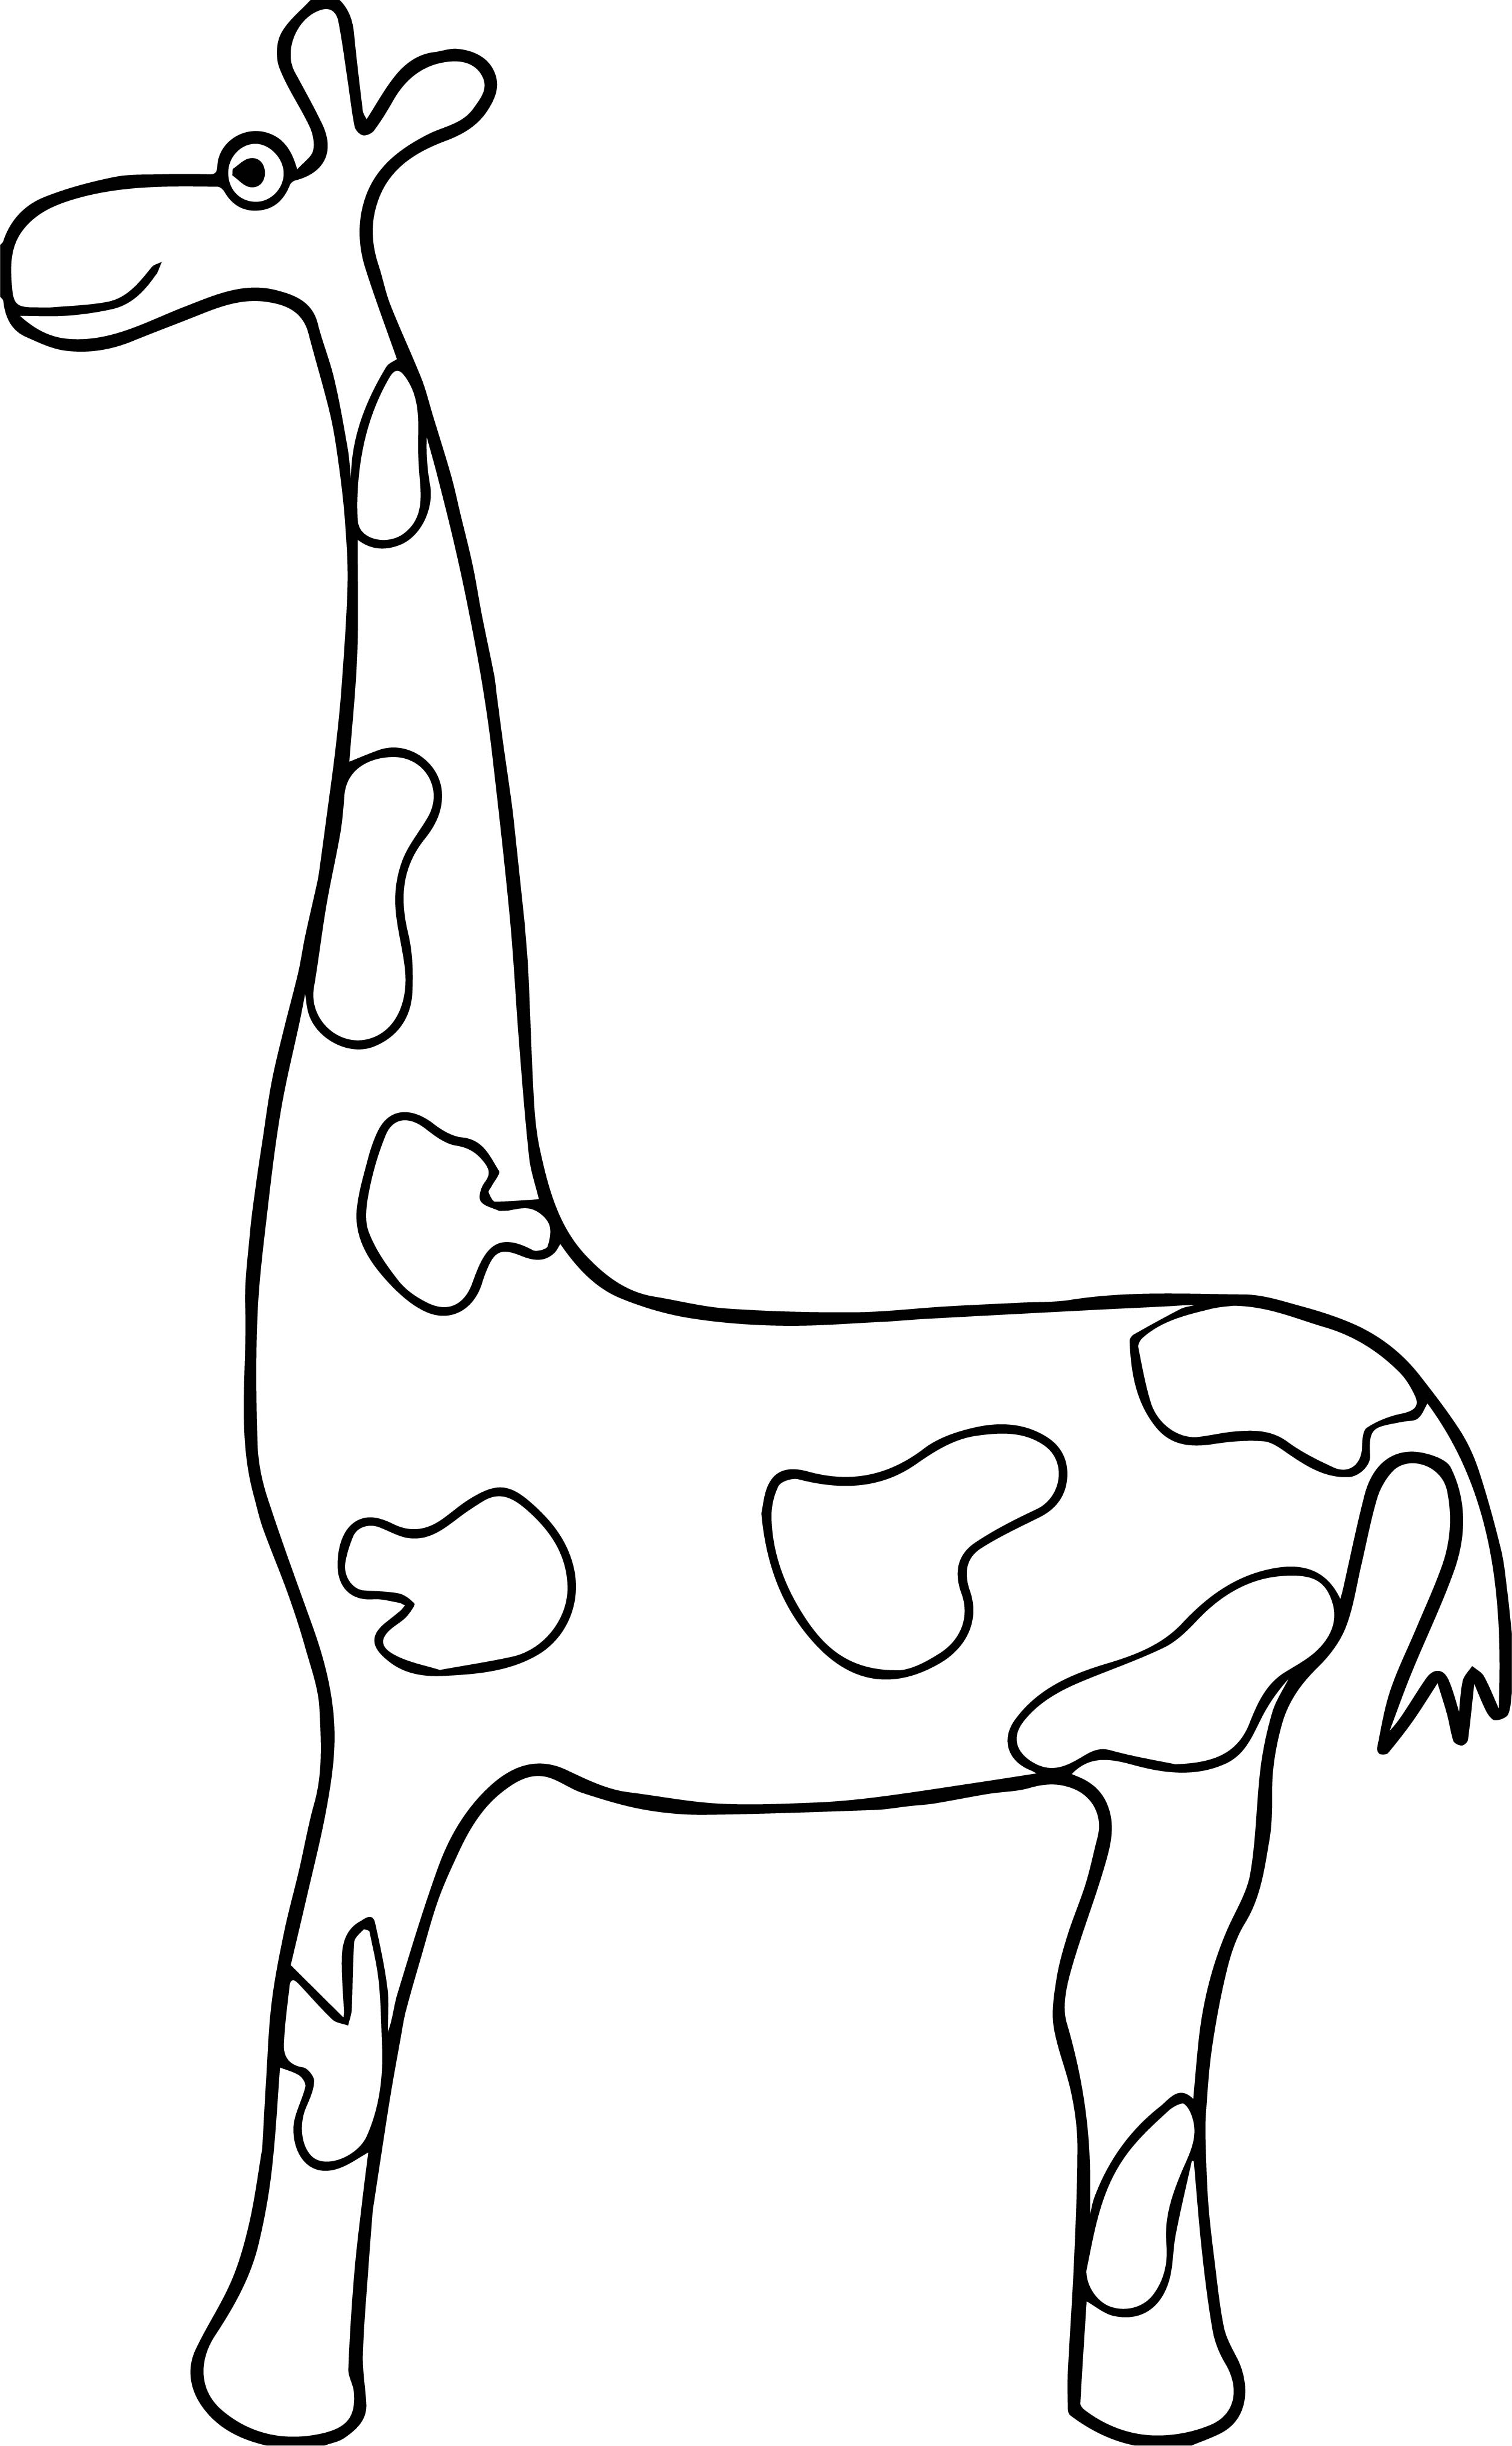 Giraffe Side Coloring Pages